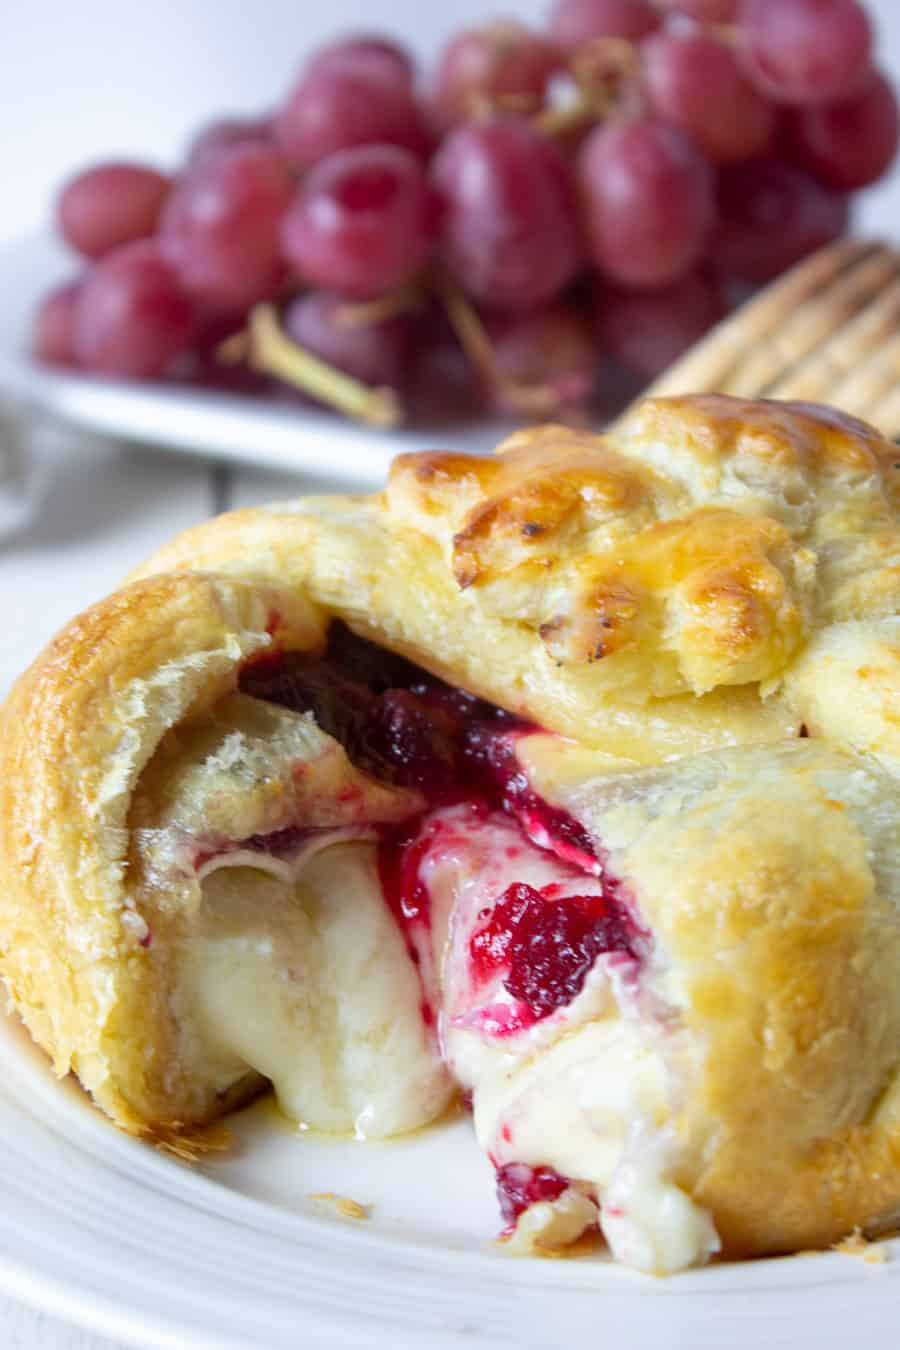 Puff pastry filled with melted brie and cranberry sauce.